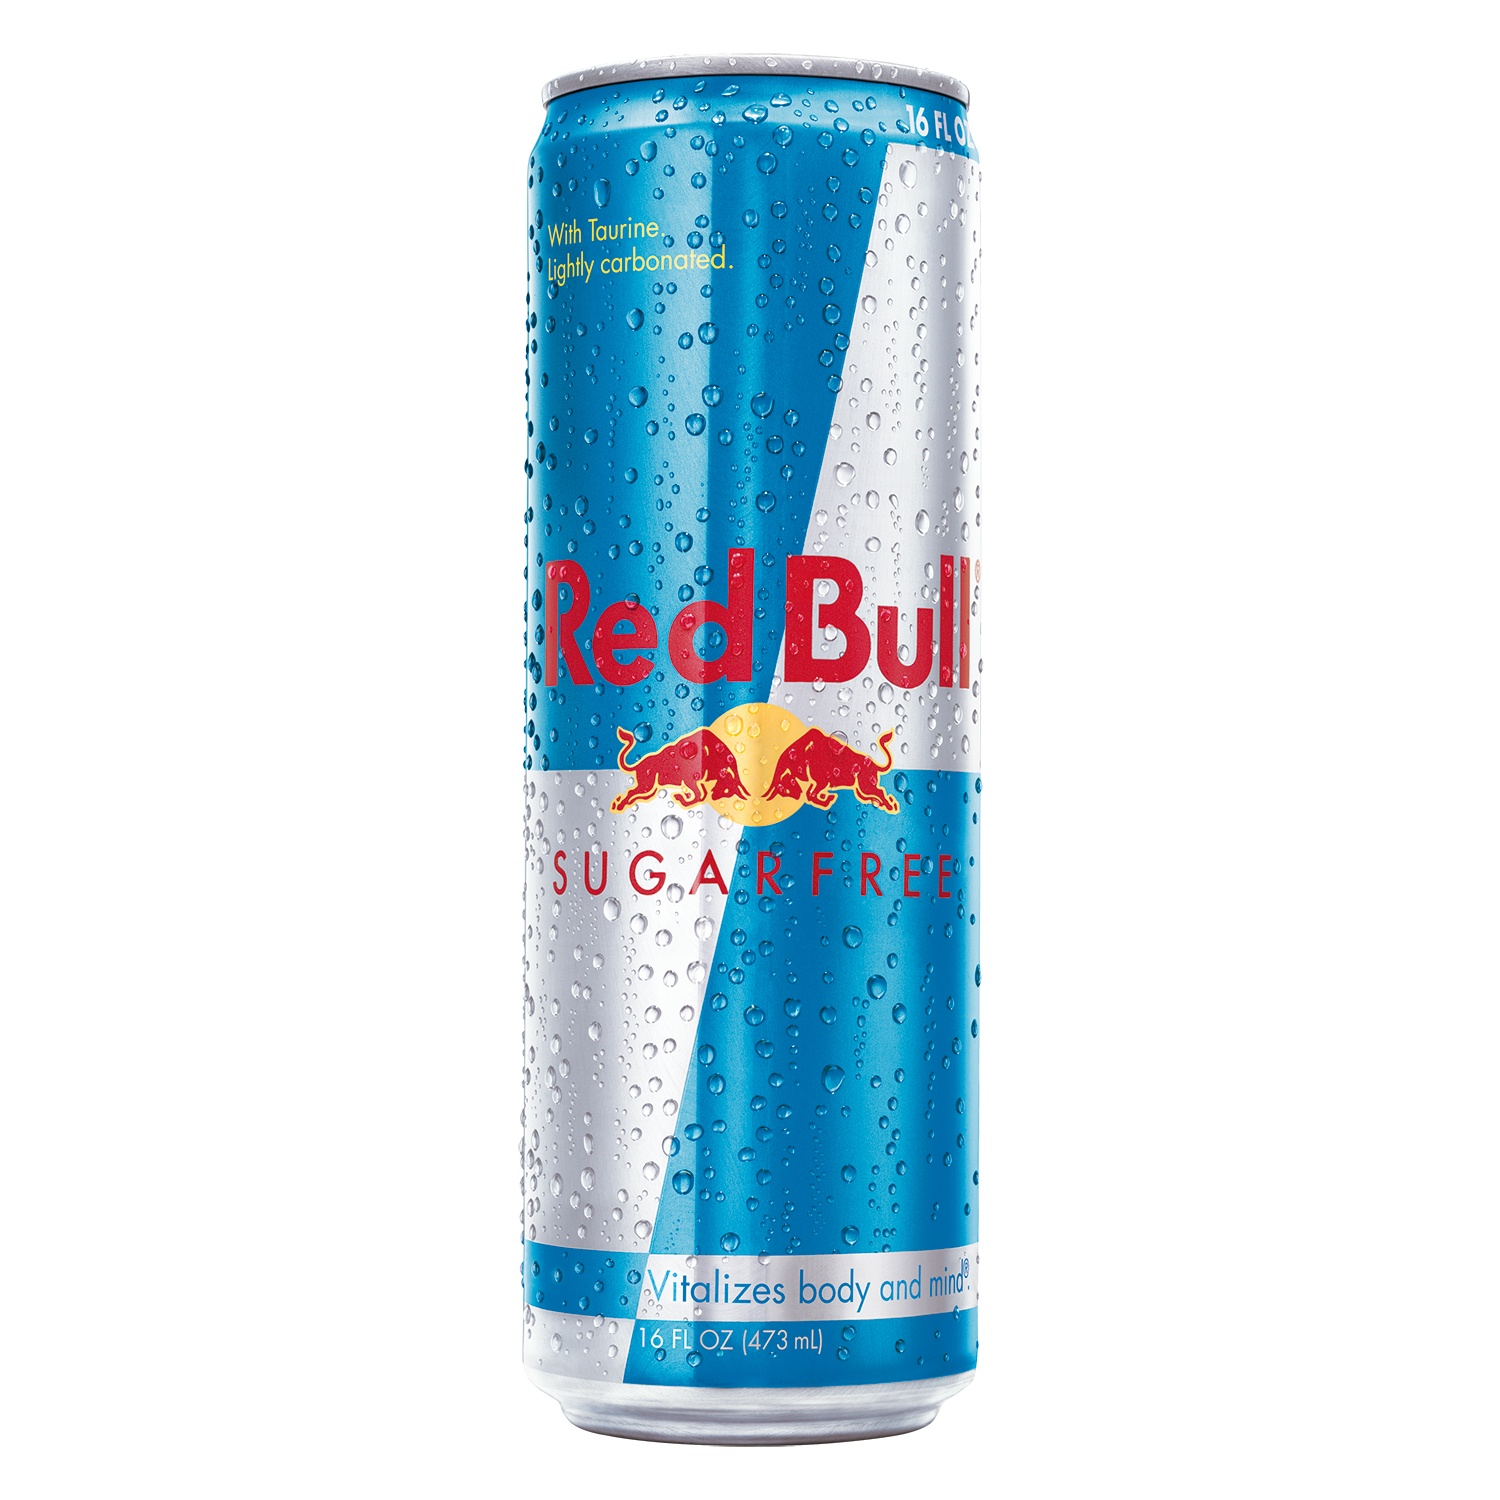 Red Bull Sugarfree Energy Drink, 16 Fl Oz, 1 Count